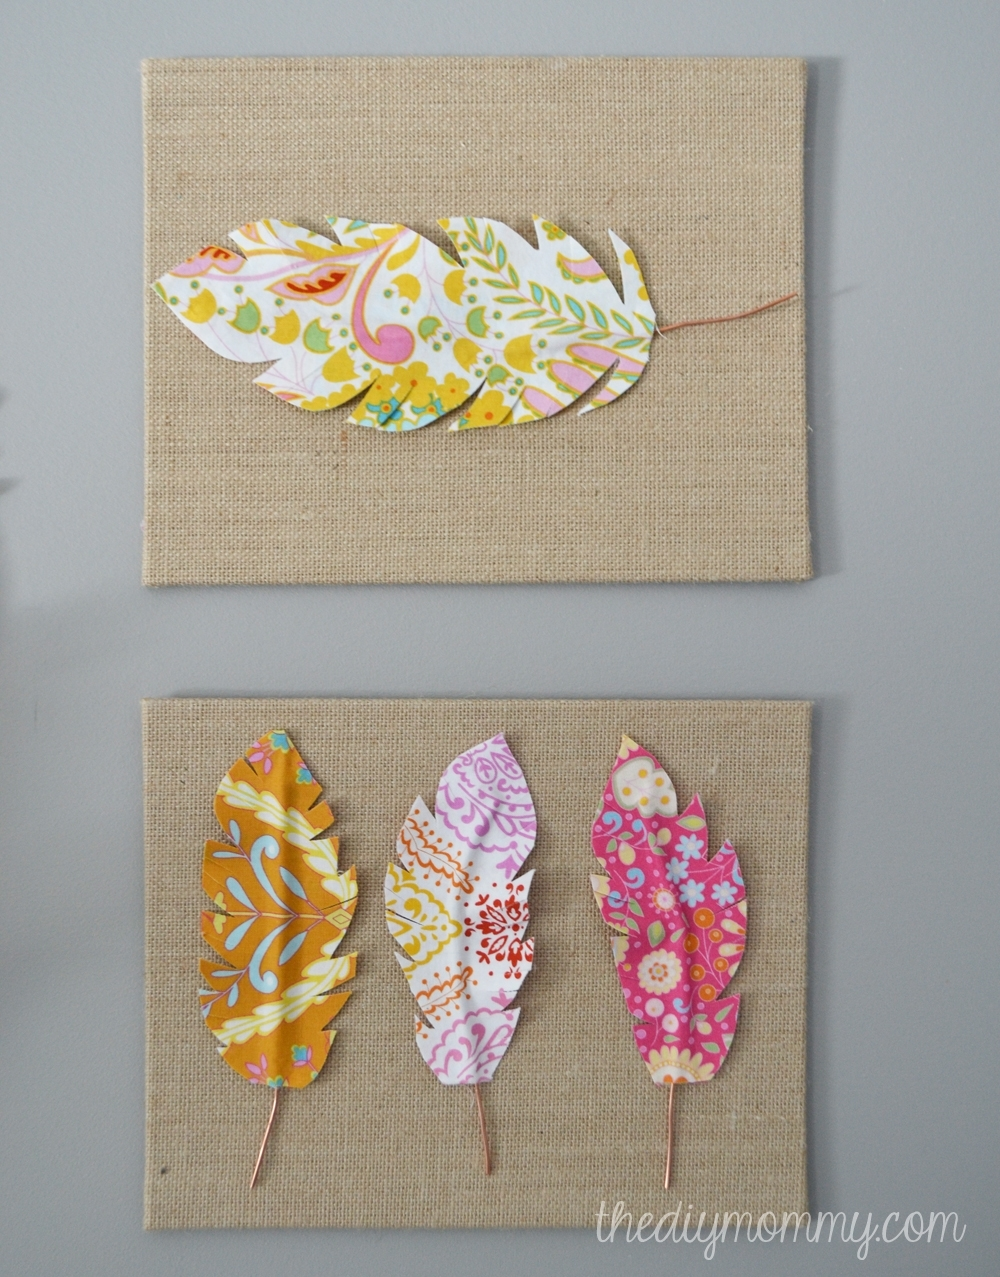 Make Fabric Feather Wall Art | The Diy Mommy In 2017 Diy Fabric Wall Art (View 13 of 15)